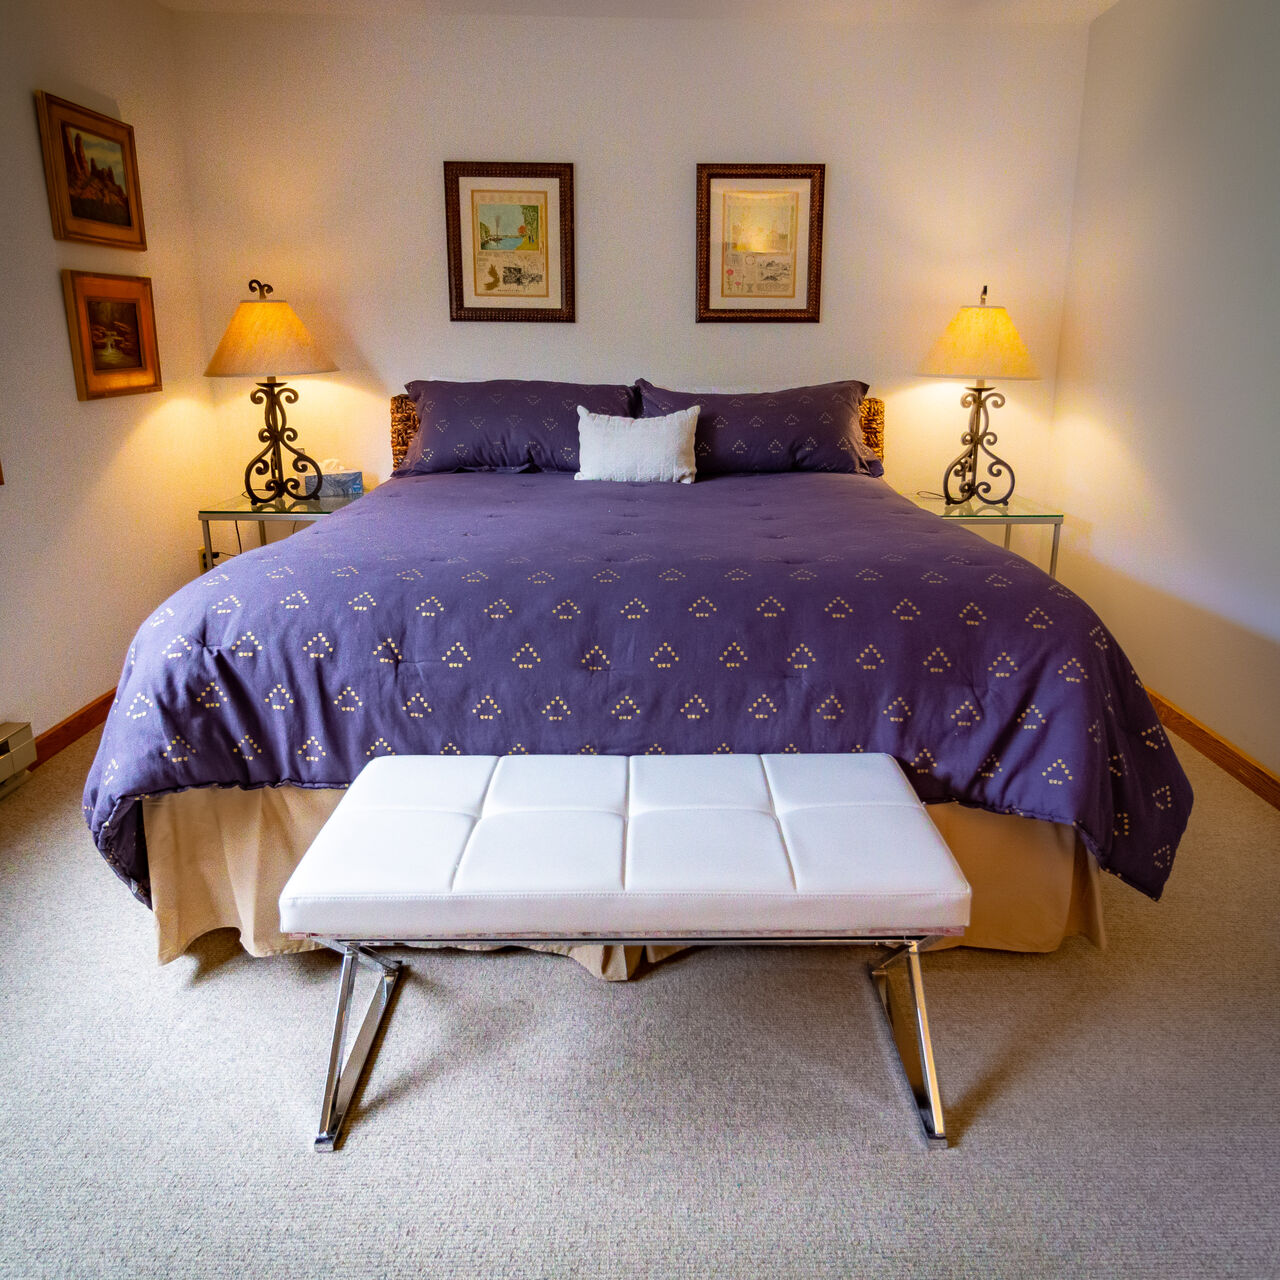 Bedroom with Purple Linens and White Bedside Bench at Colorado Vacation Cabin